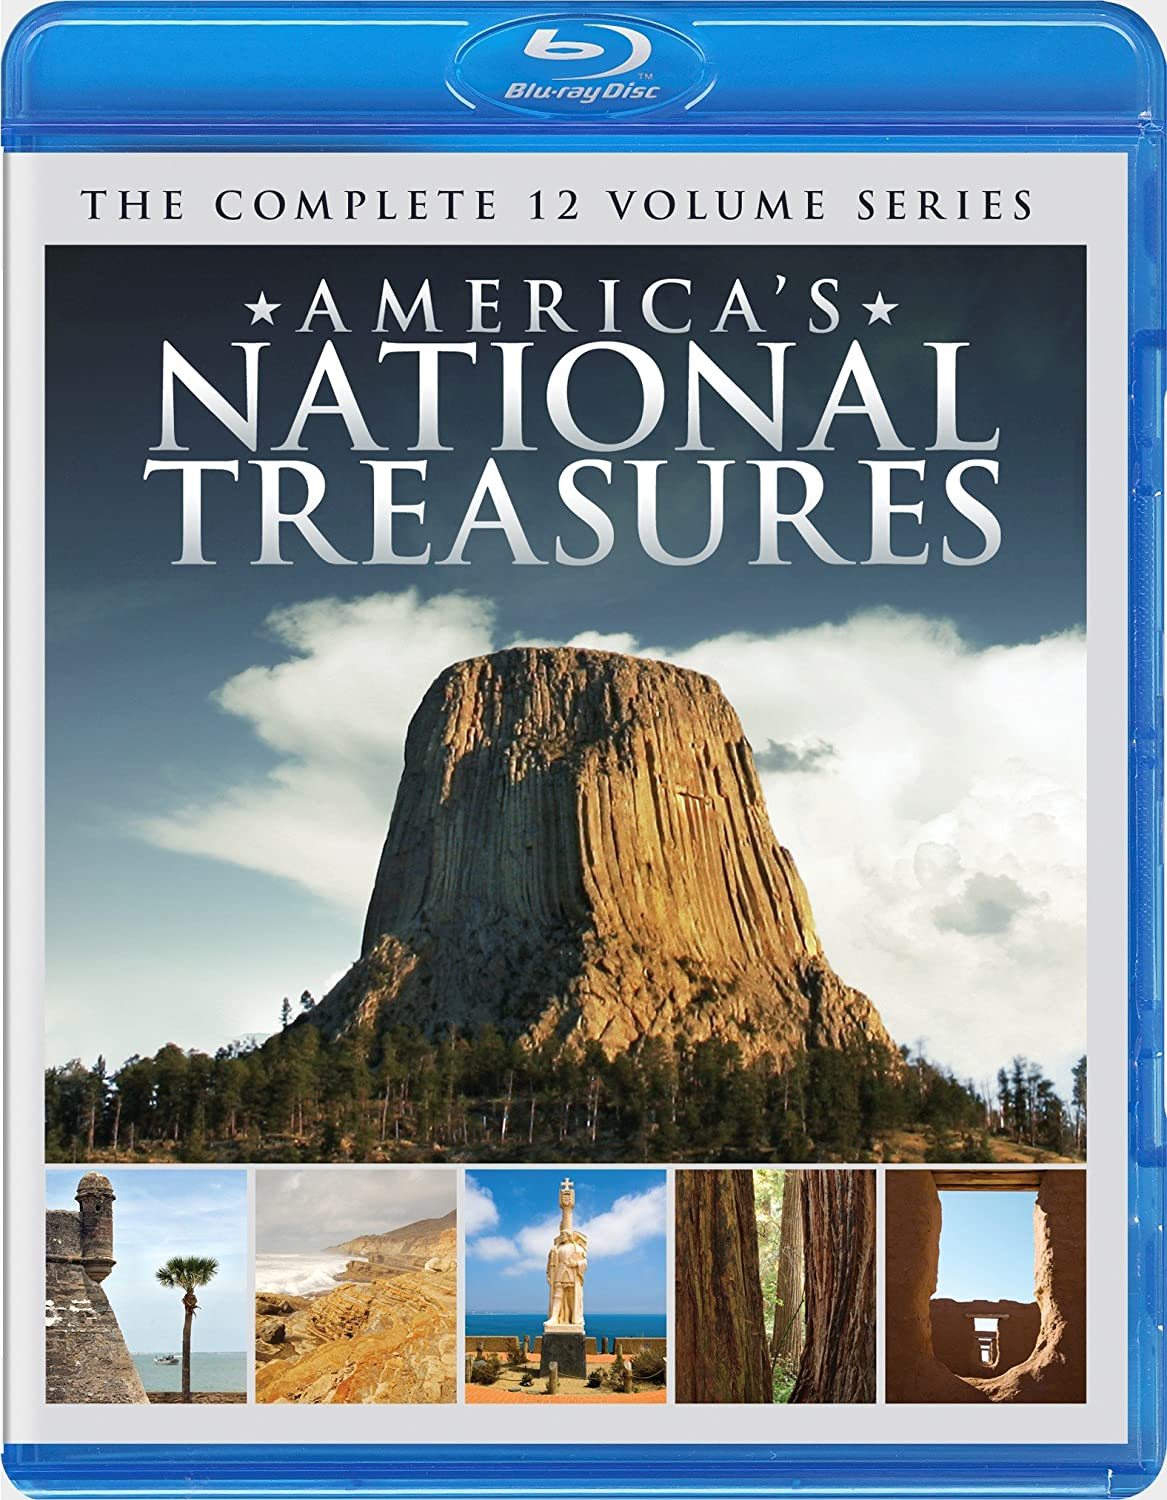 Americas National Treasures [Blu-ray] $7.99